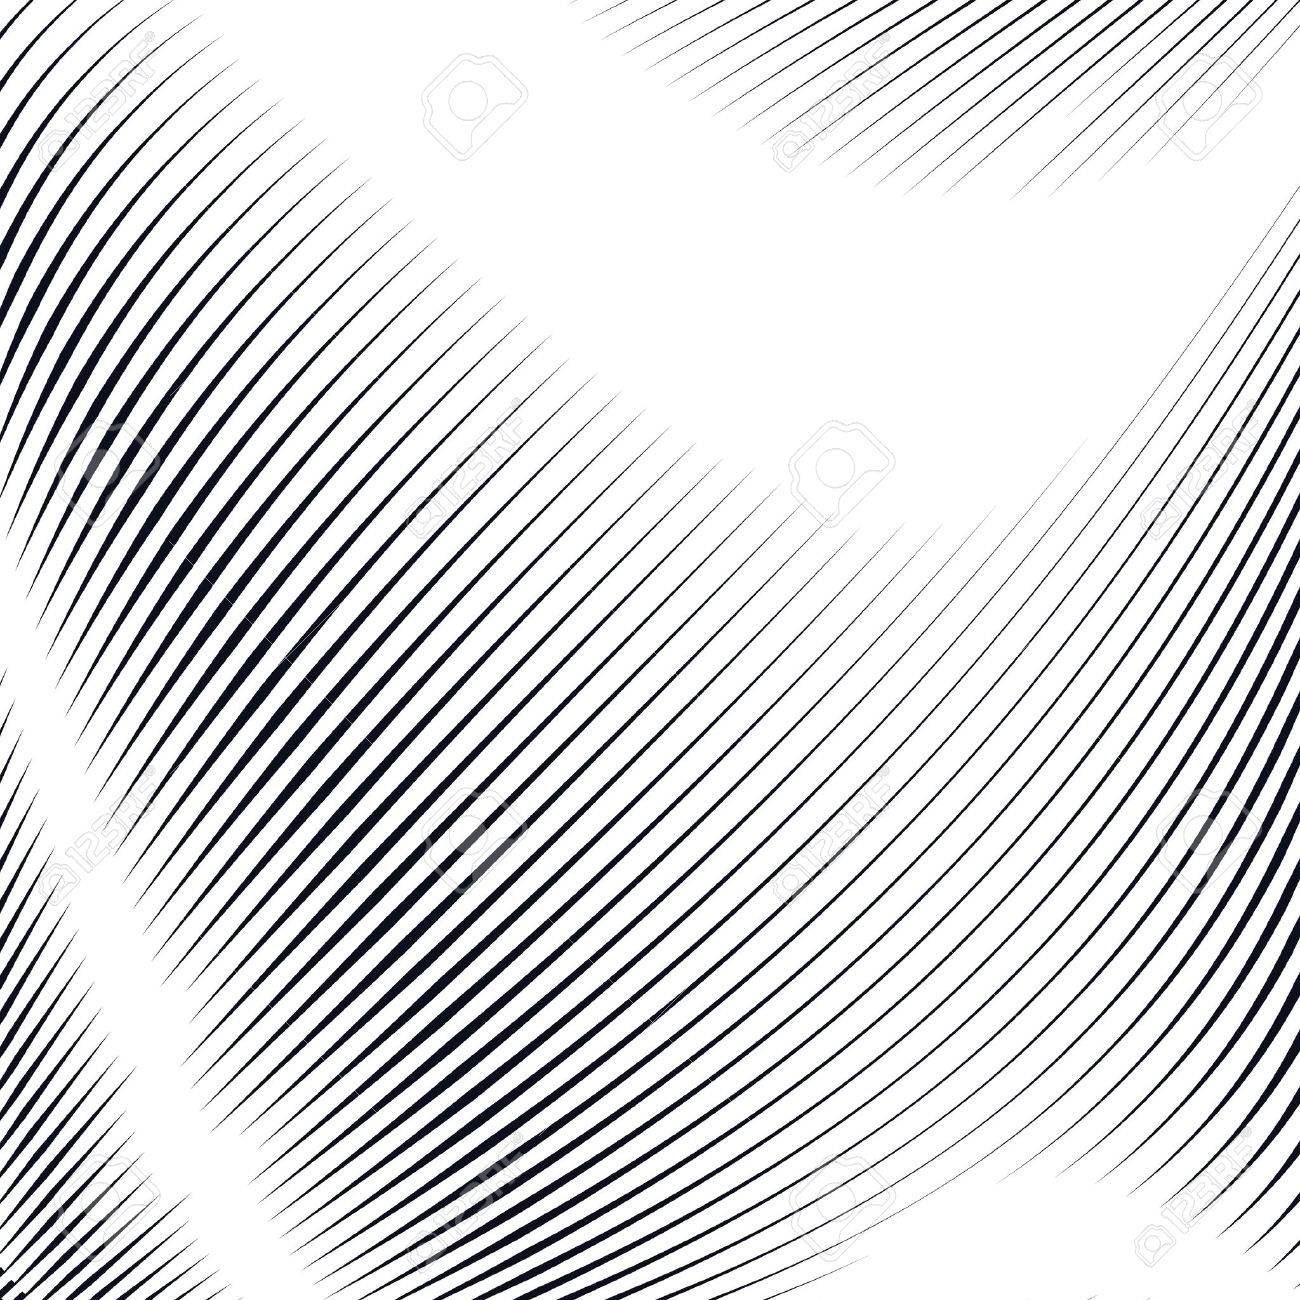 Noisy contrast lined backdrop, tiling with visual effects. Moire art technique. - 42299328